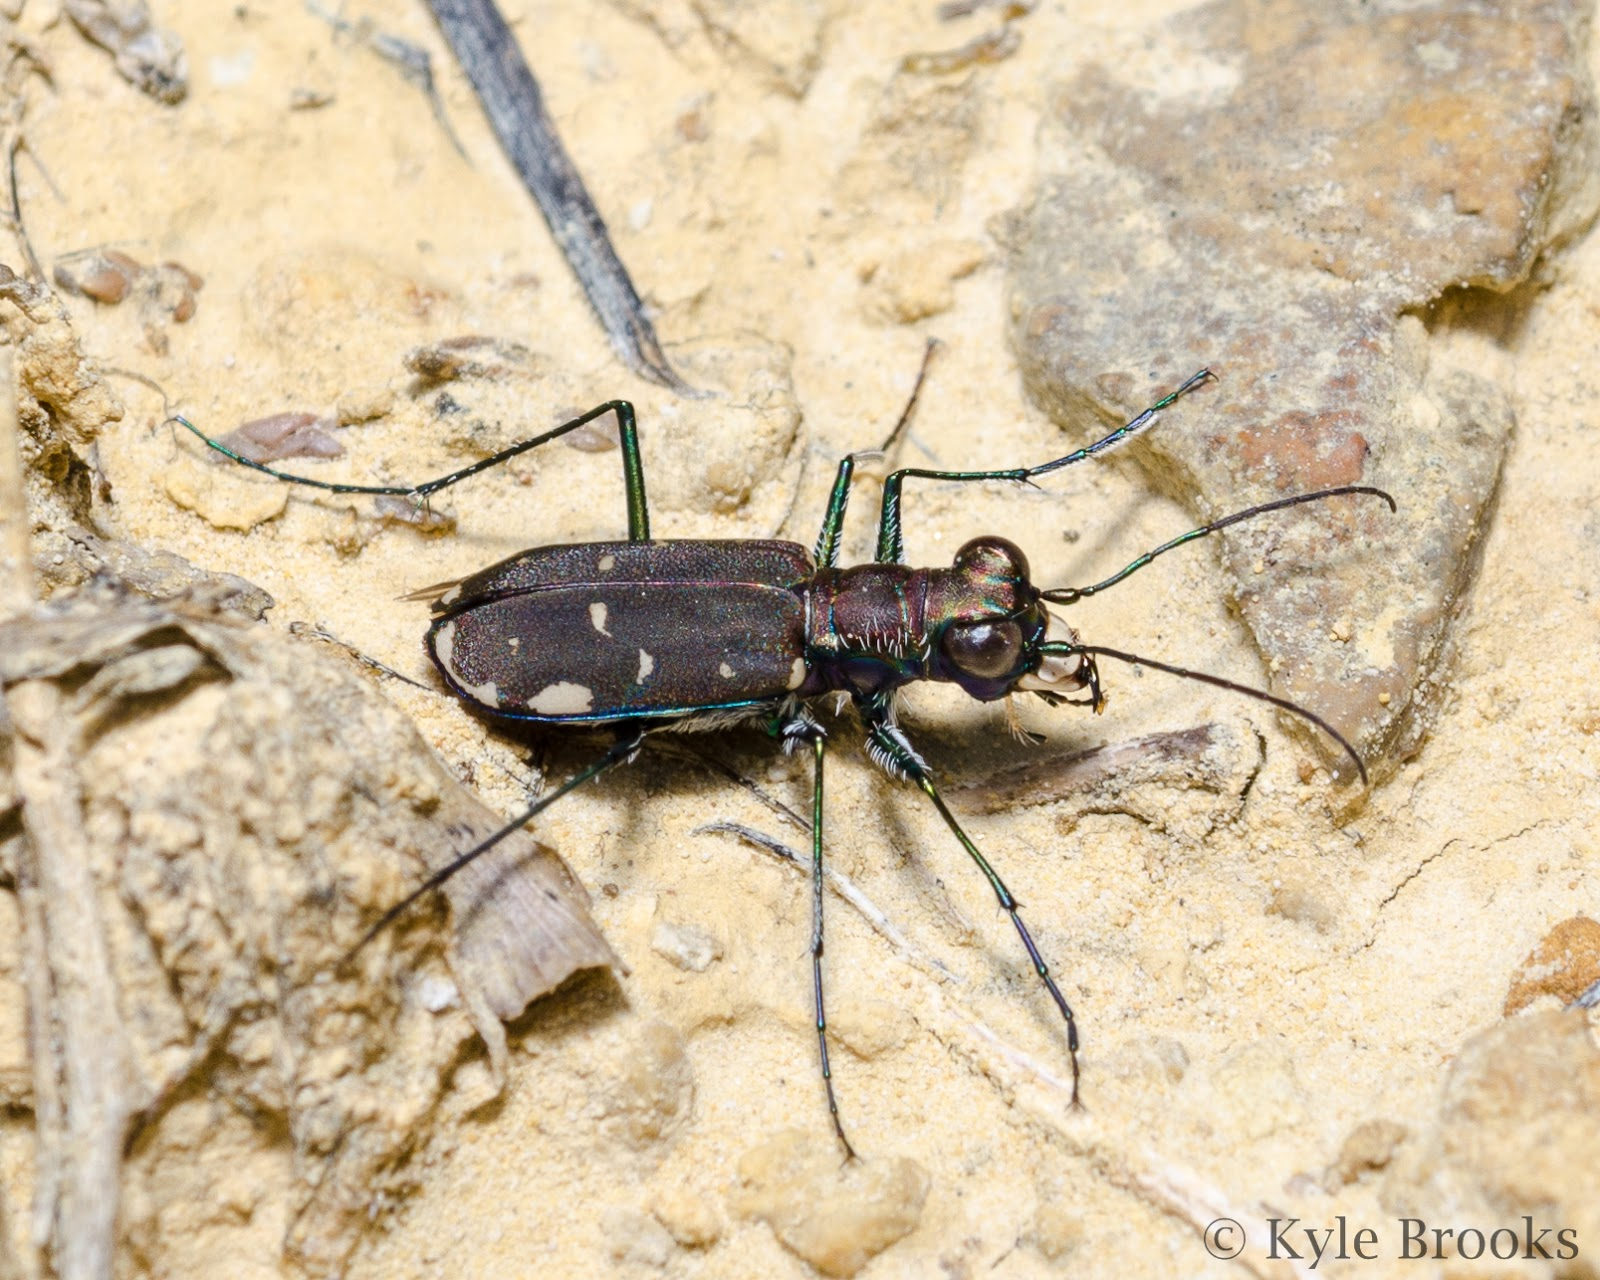 Eastern Red-Bellied Tiger Beetle, Cicindela rufiventris